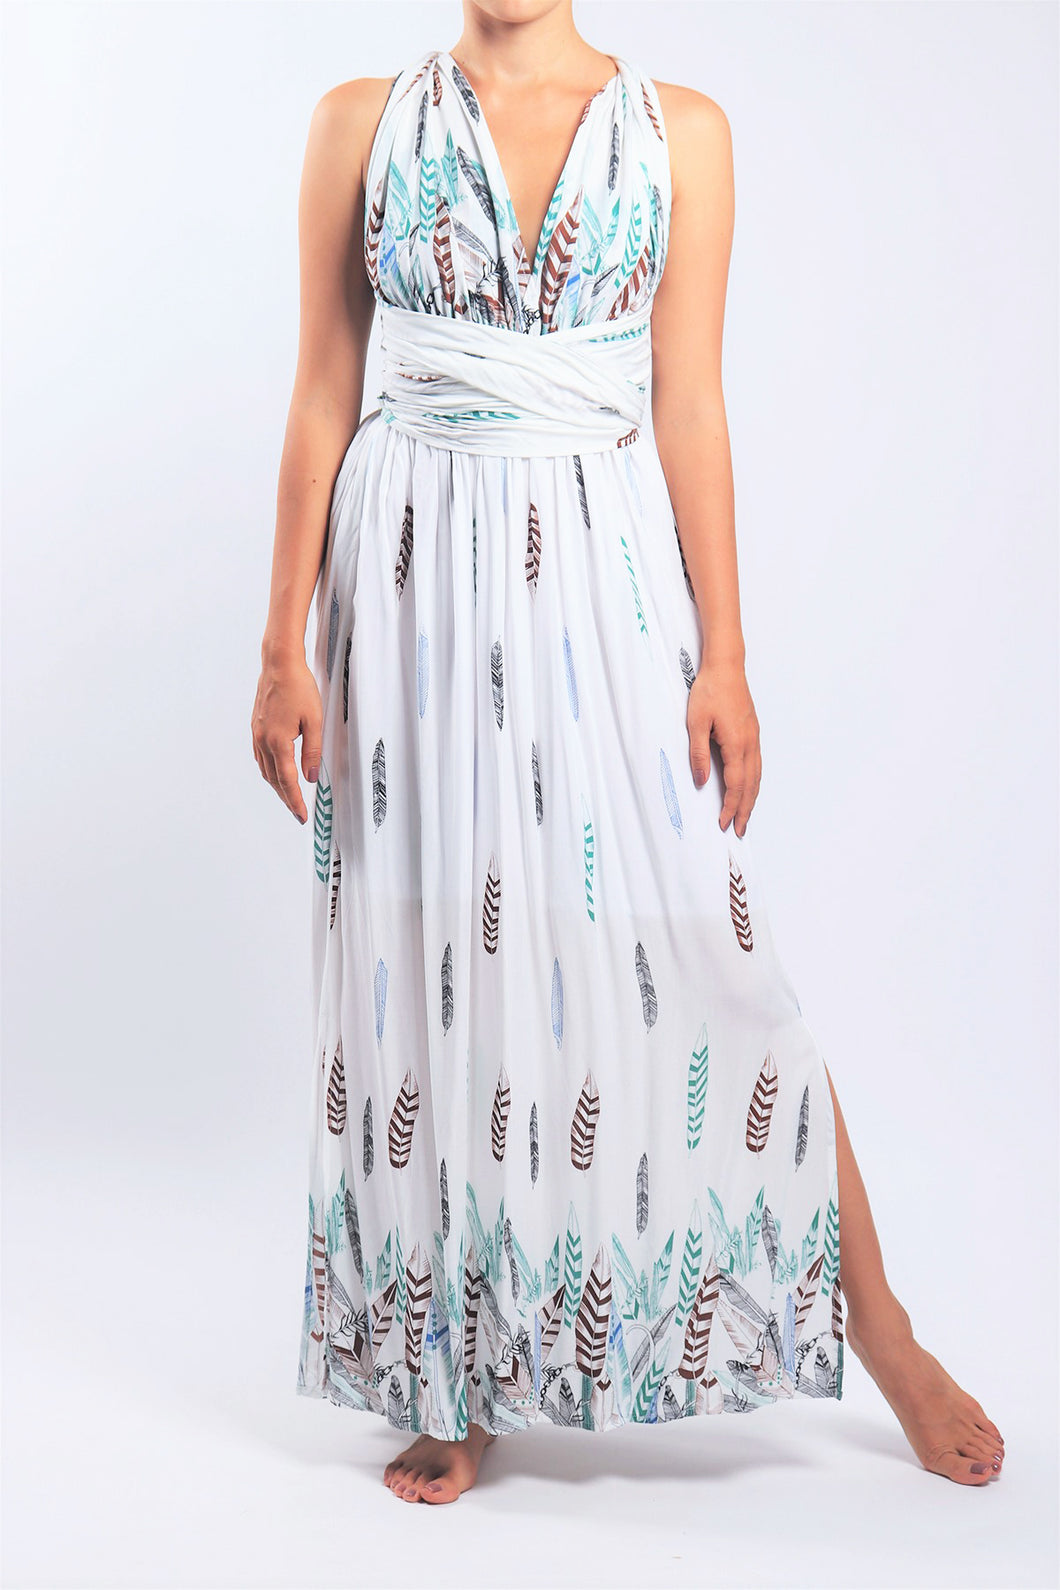 Venus Dress/White Feather